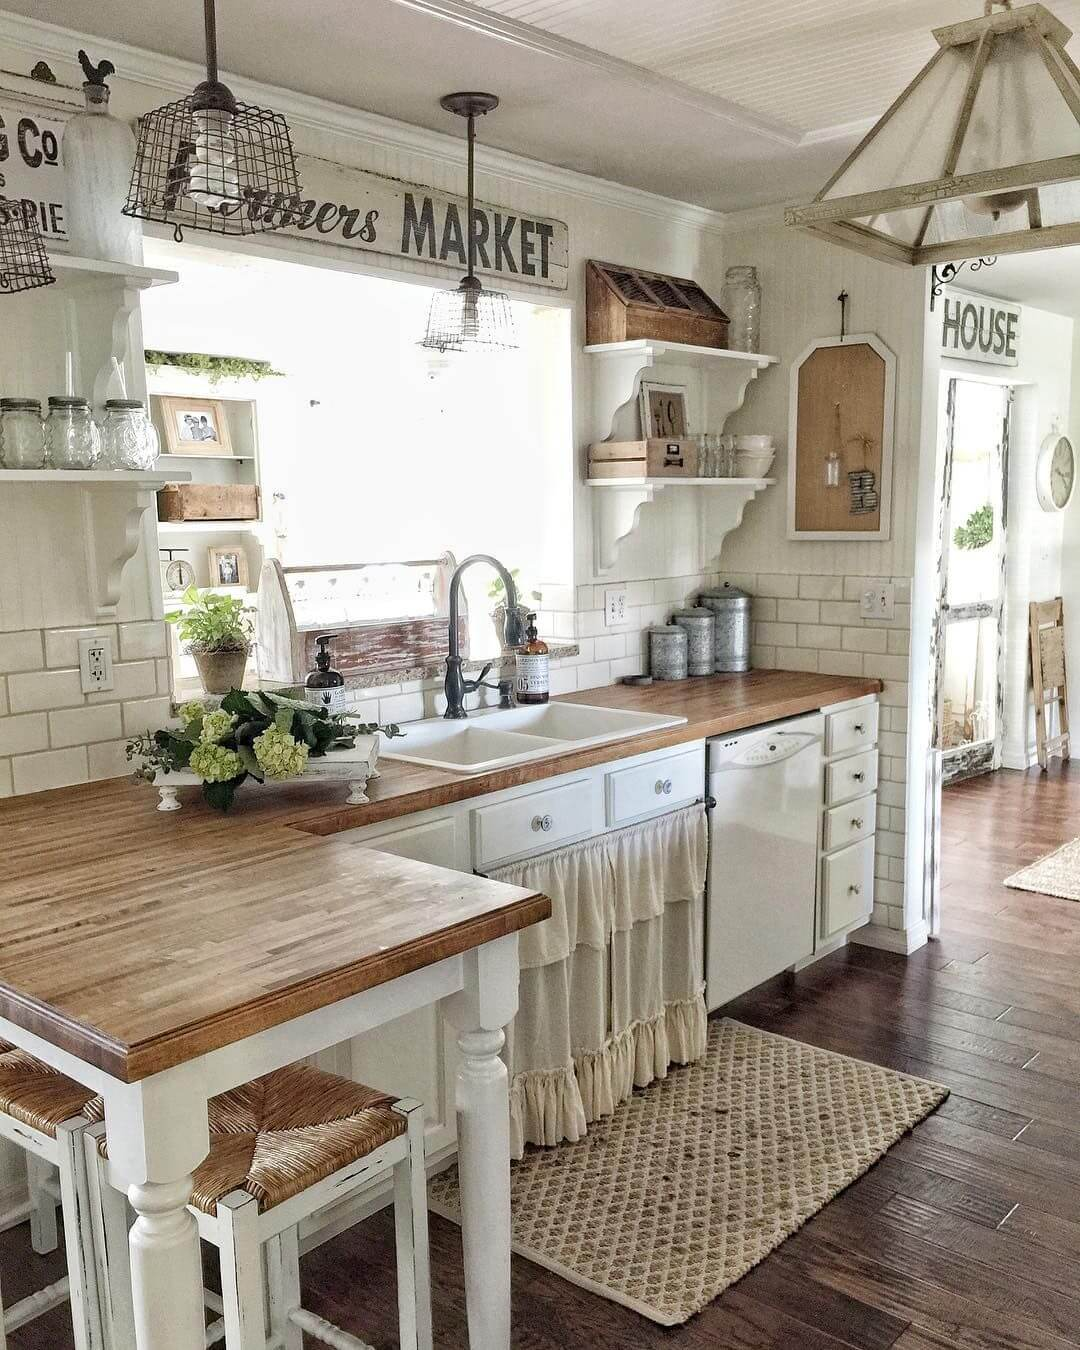 farmhouse kitchen cabinets. Lightly Rustic Off White Farmhouse Kitchen Cabinets 35 Best Cabinet Ideas and Designs for 2018